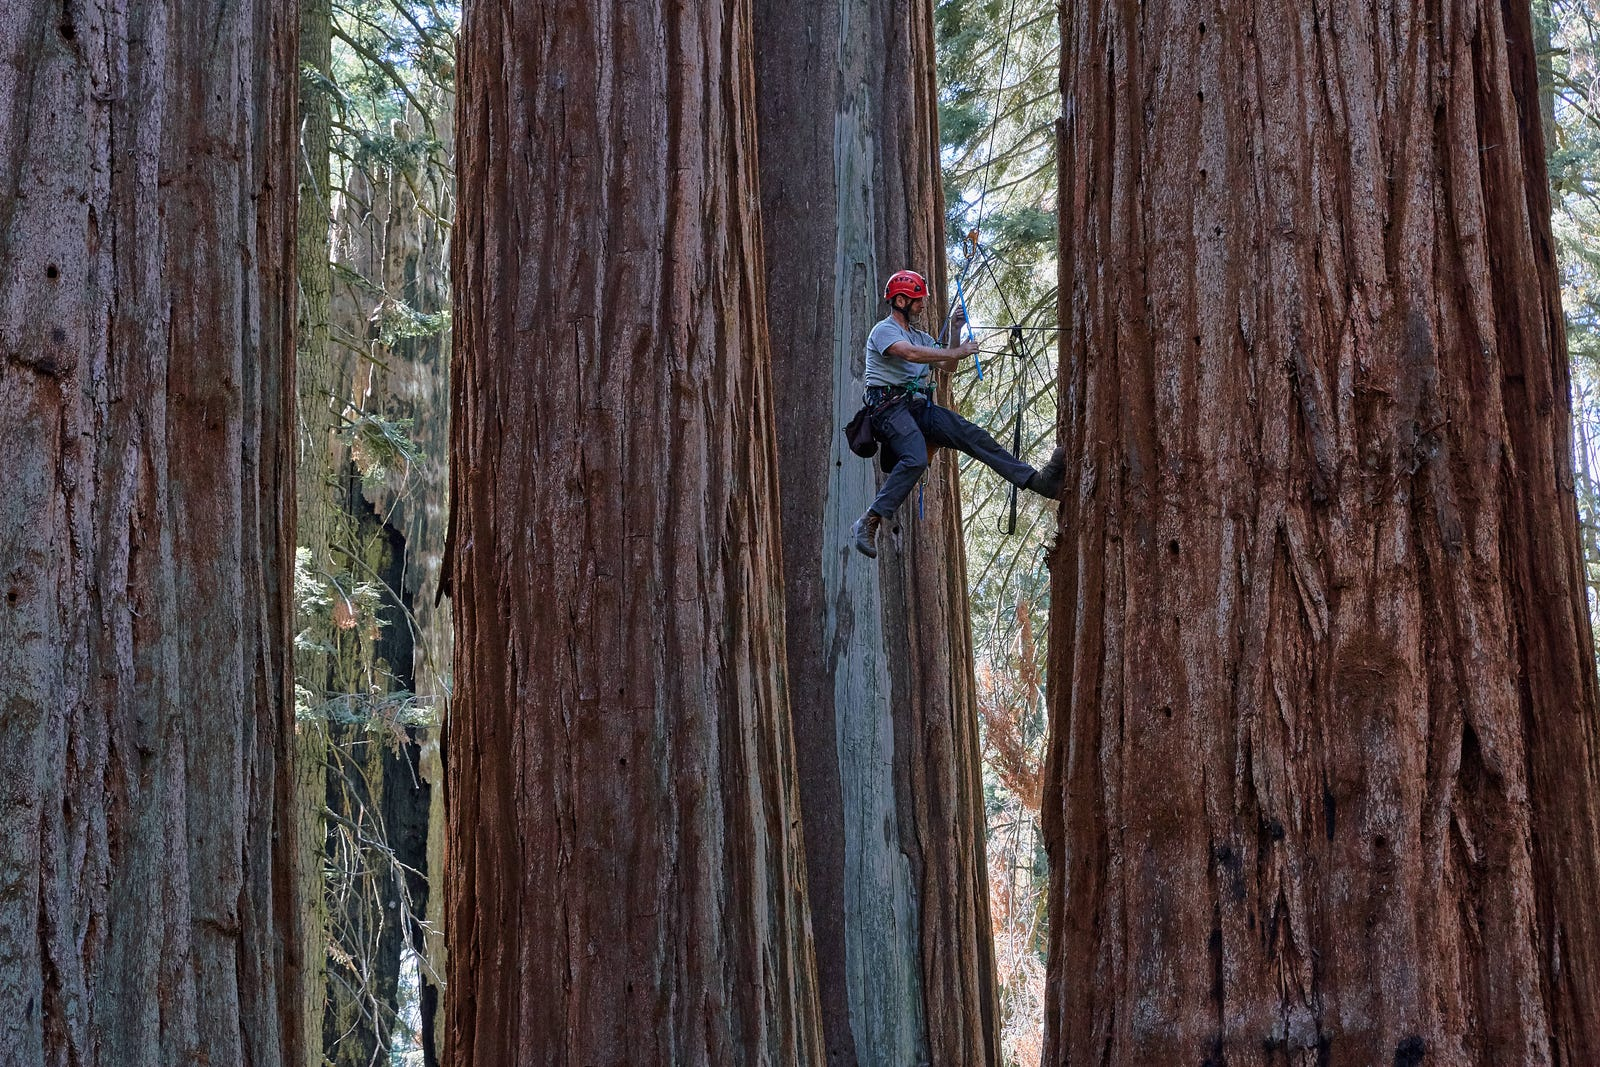 Meet the Botanists Who Climb the World's Tallest Trees